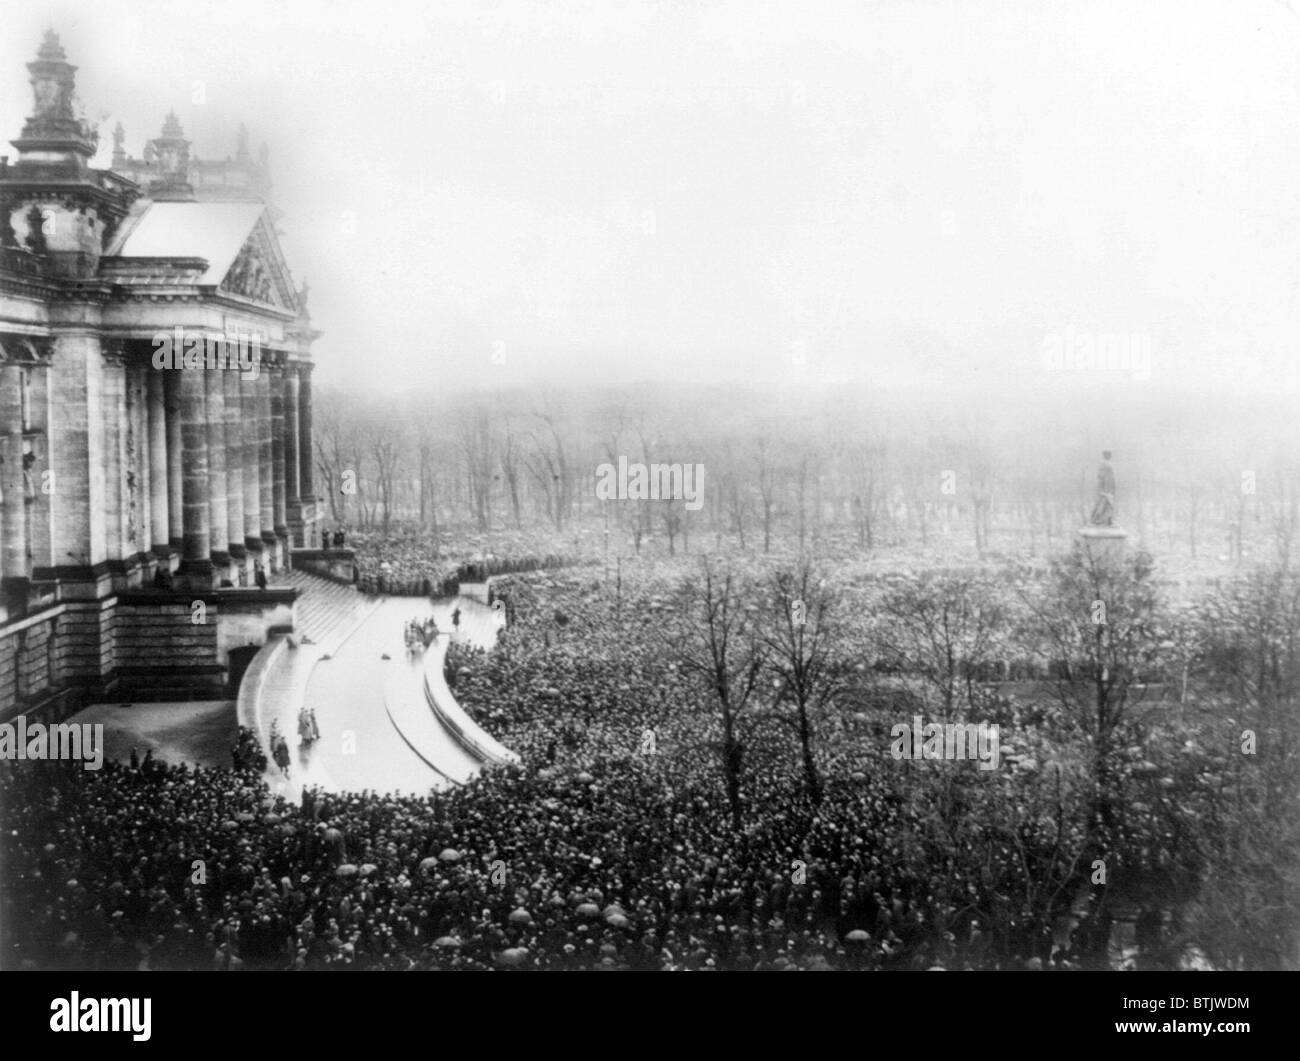 Berlin, demonstrations on the re-opening day of the National convent, the 13th of January (in front of the Reichstag) - Stock Image